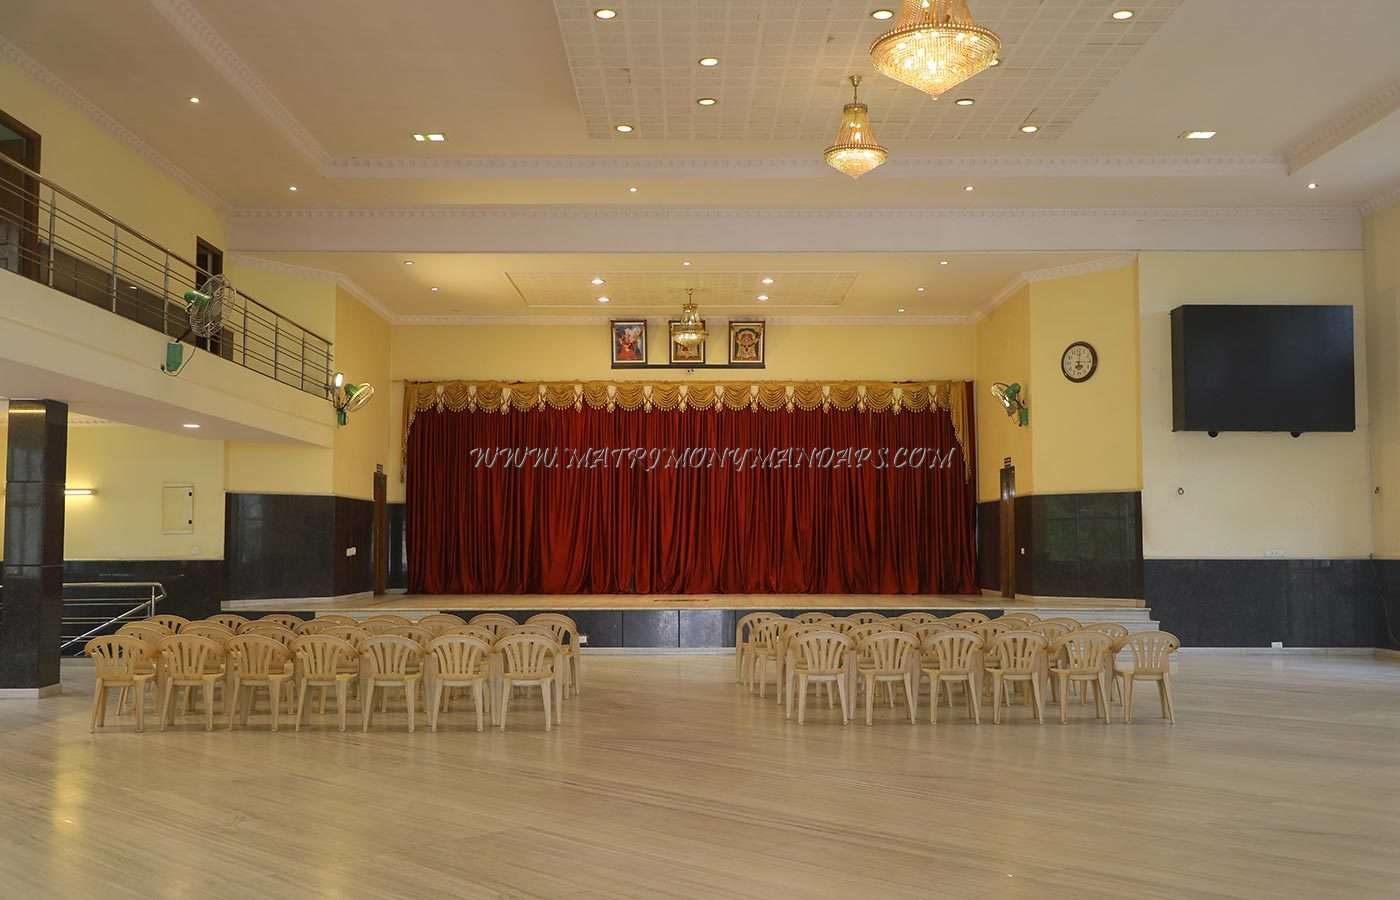 Find the availability of the Keerthi Convention Hall in JP Nagar, Bangalore and avail special offers